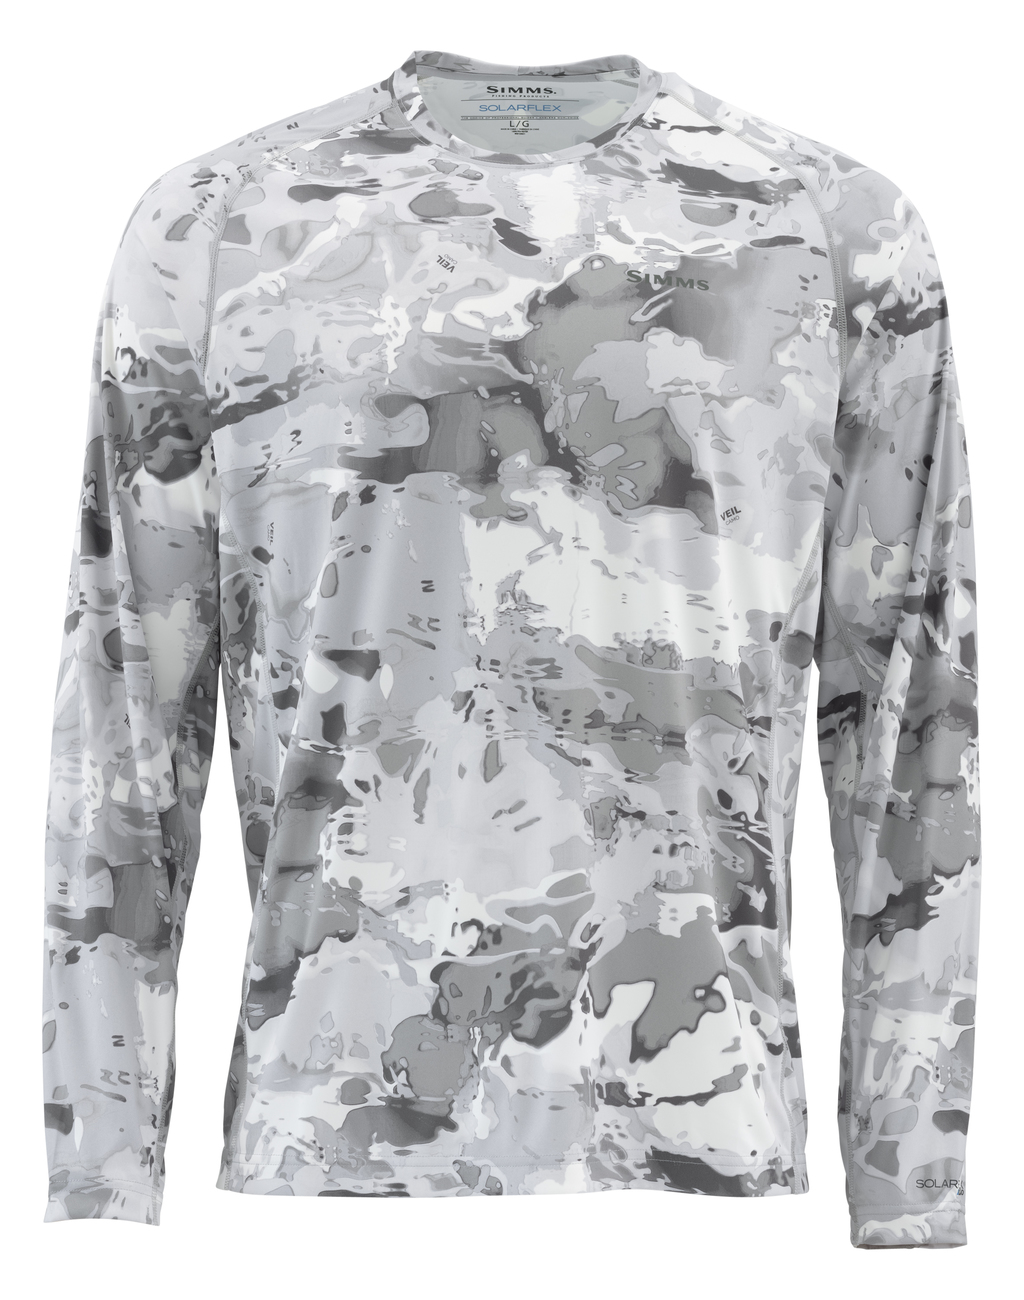 a05eea6e Simms Solarflex LS Crew Graphic Prints Shirt cloud camo grey | Longsleeves  | Shirts and Pullovers | Clothing | adh-fishing